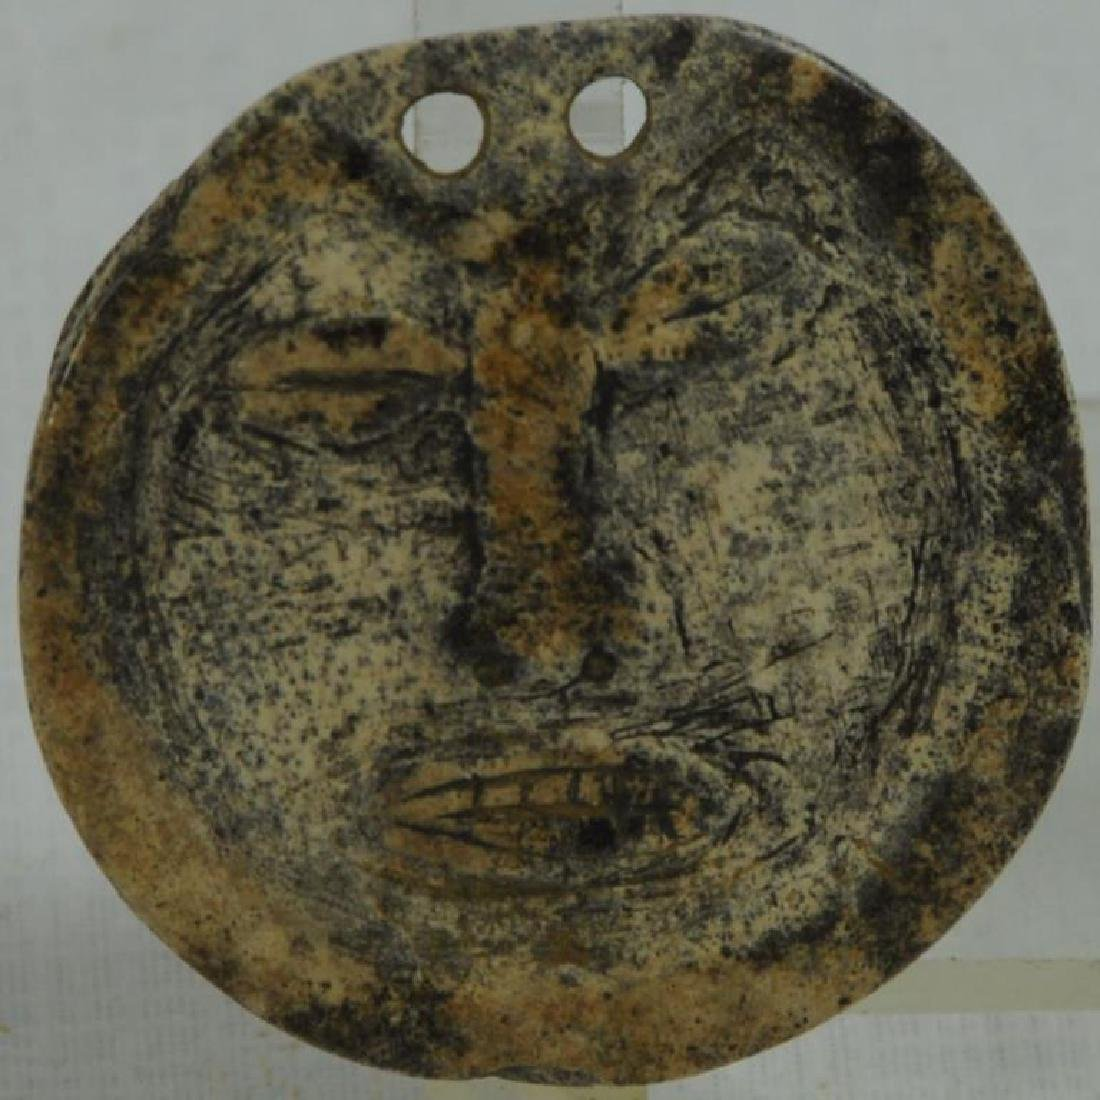 """EXTREMELY RARE CULT """"DEATH MASK"""" GORGET CARVED IN"""